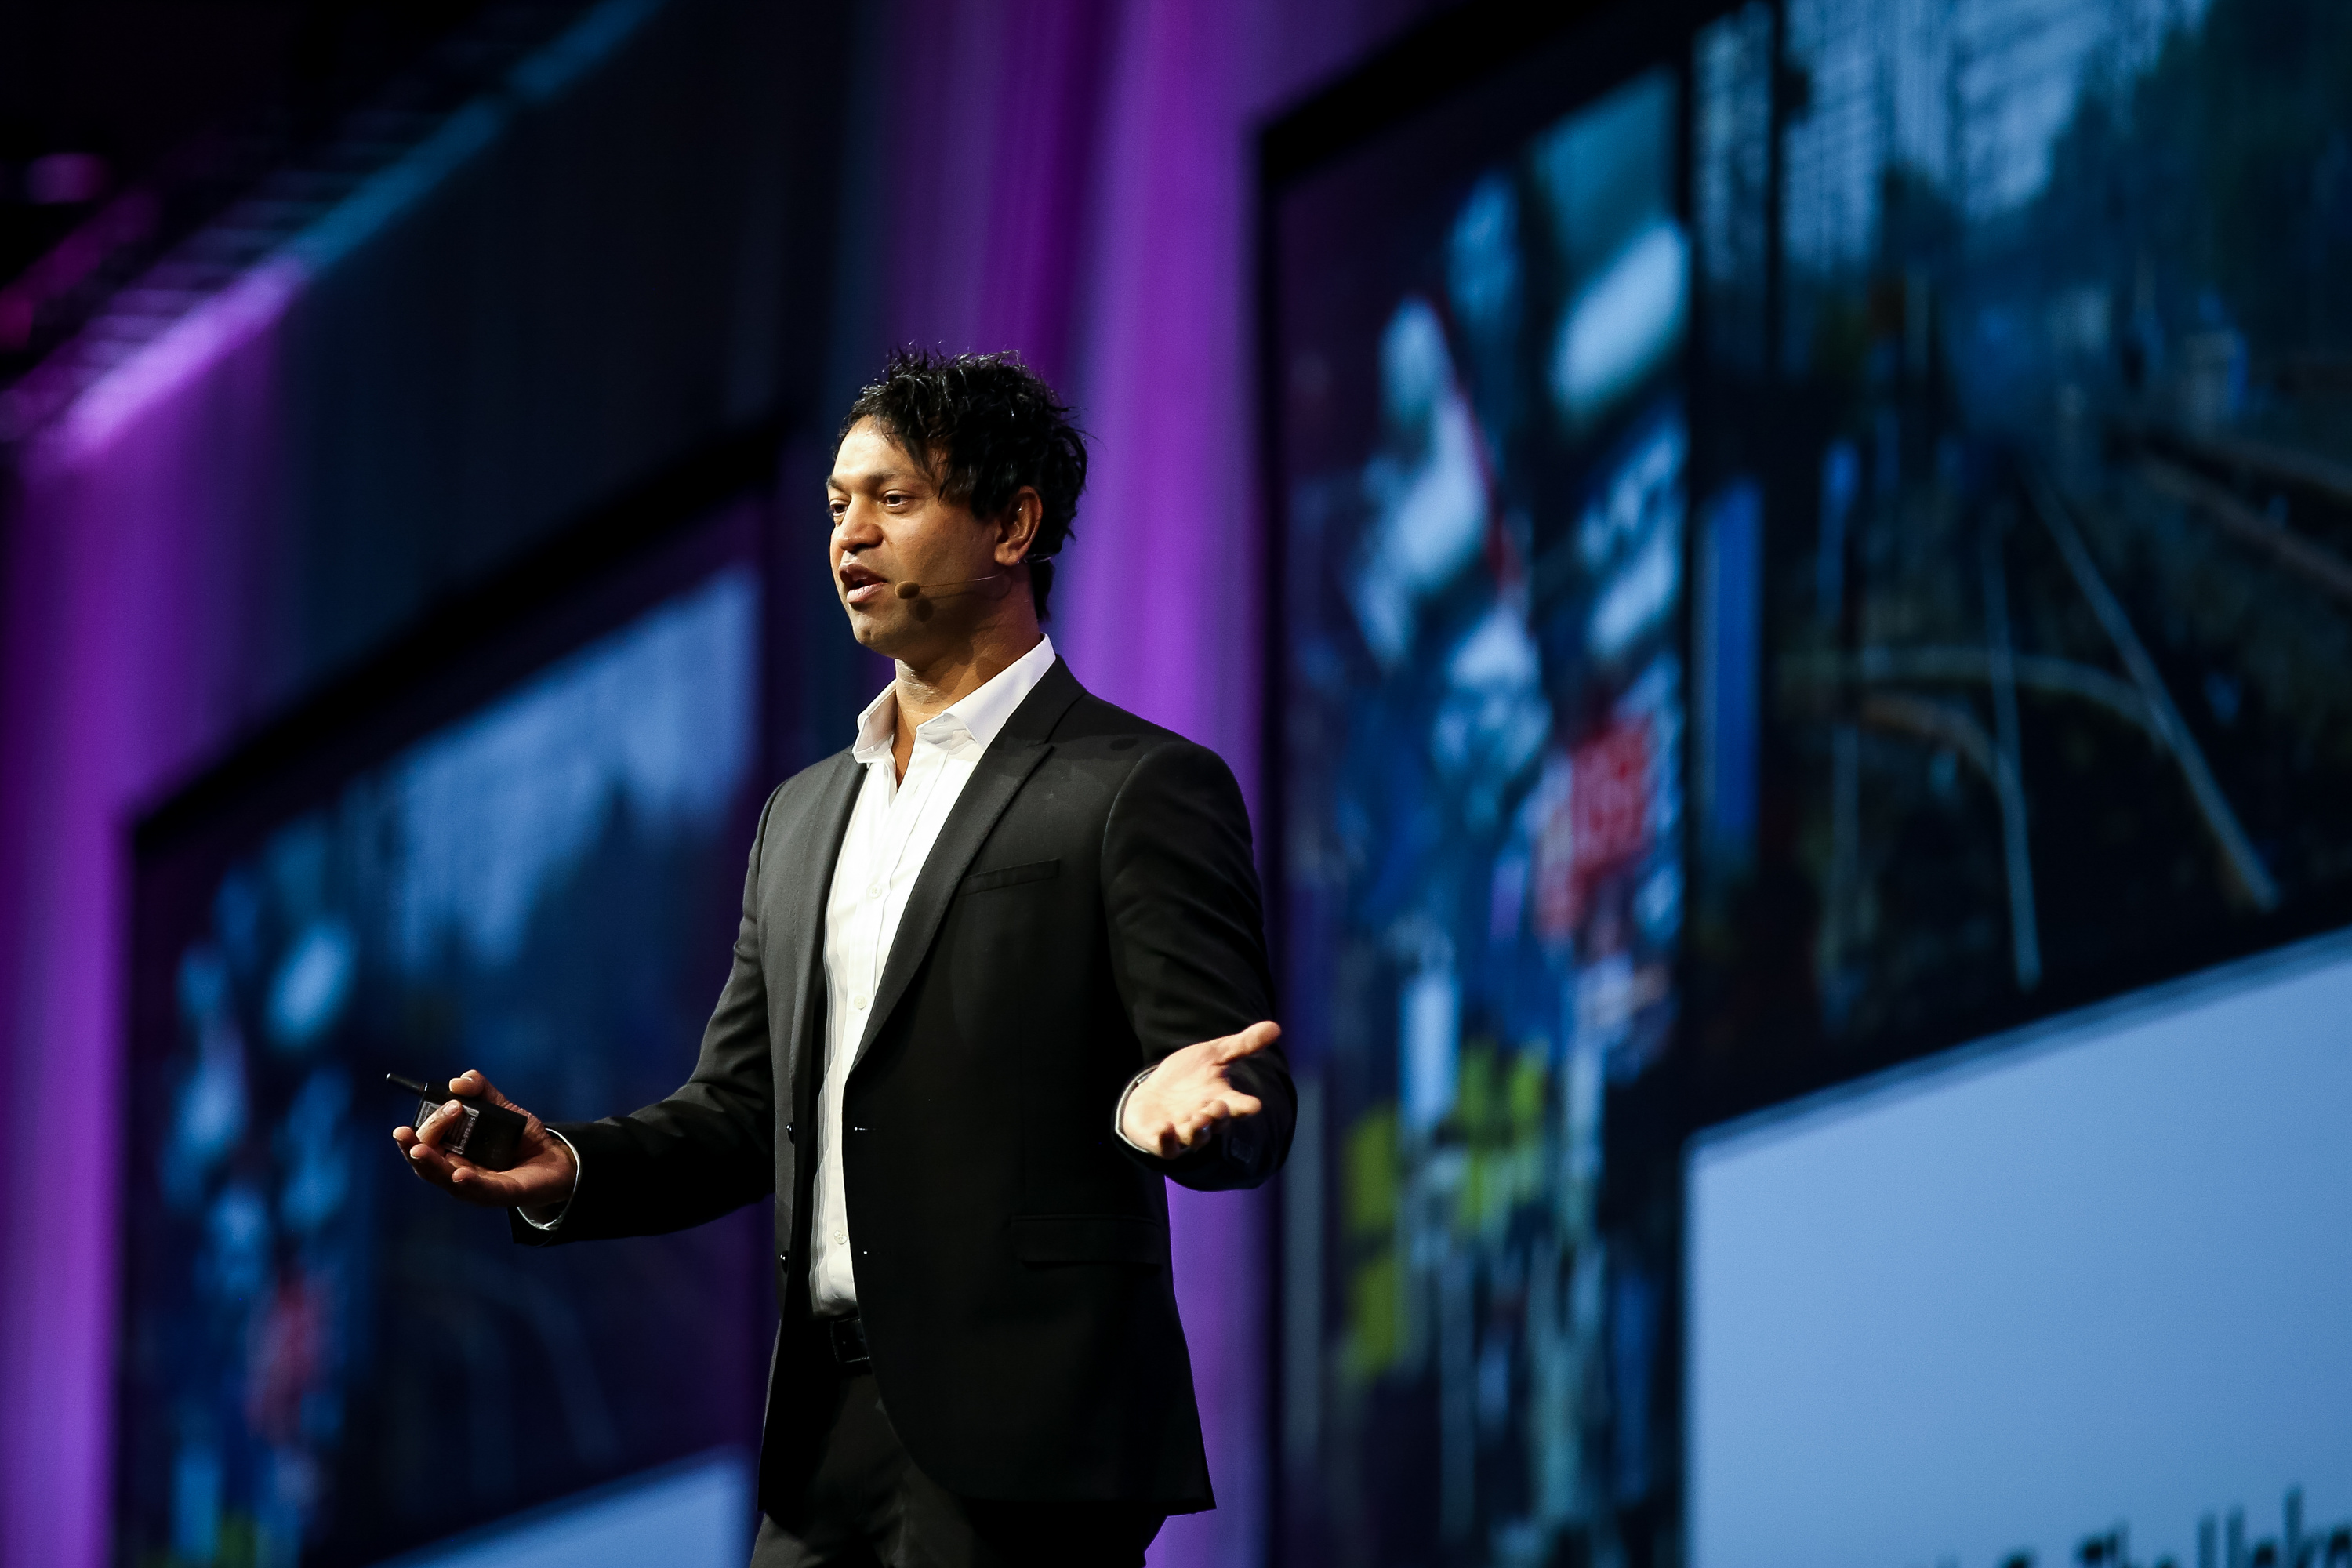 Saroo Brierley gives a keynote address at the RootsTech conference at the Salt Palace in Salt Lake City on Friday, March 1, 2019. Brierley lost contact with his family as a young child in India and was raised by an adoptive family in Australia, before later reconnecting with his biological family.